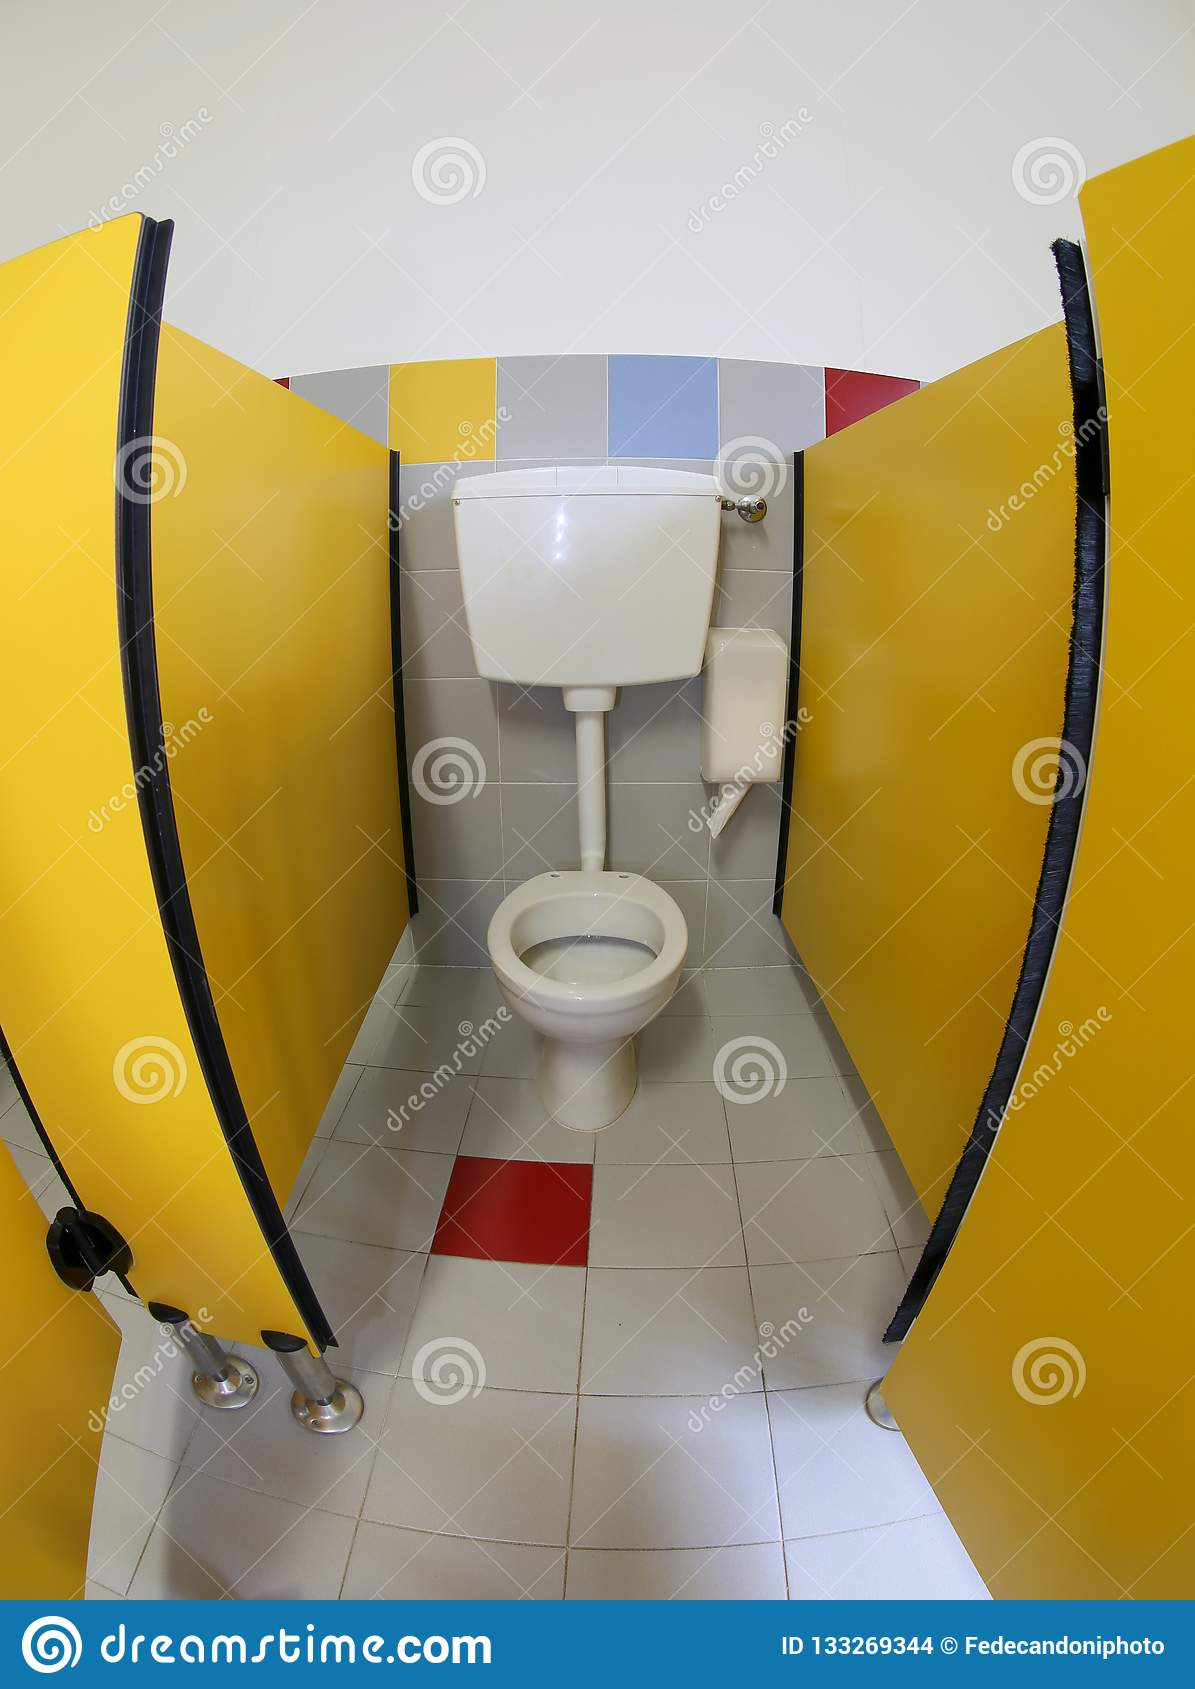 Toilet inside the nursery bathrooms without kids